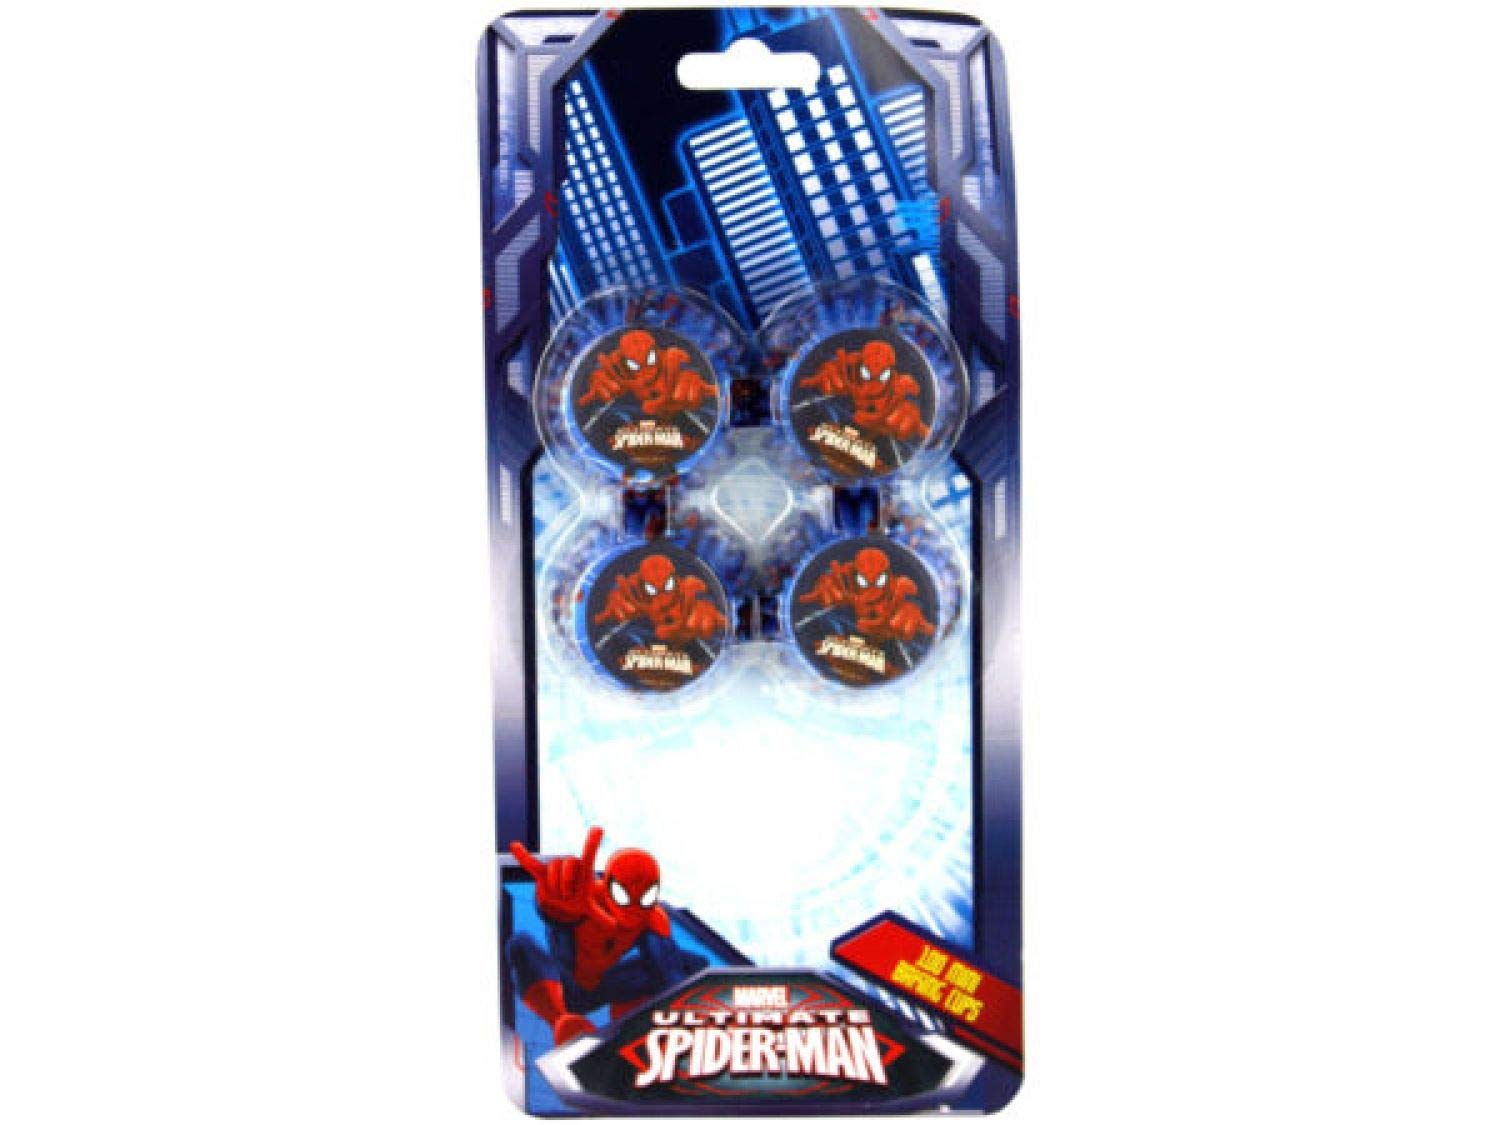 bulk buys 100 Count Spider-Man Mini Cupcake Liners - Set of 24 by bulk buys